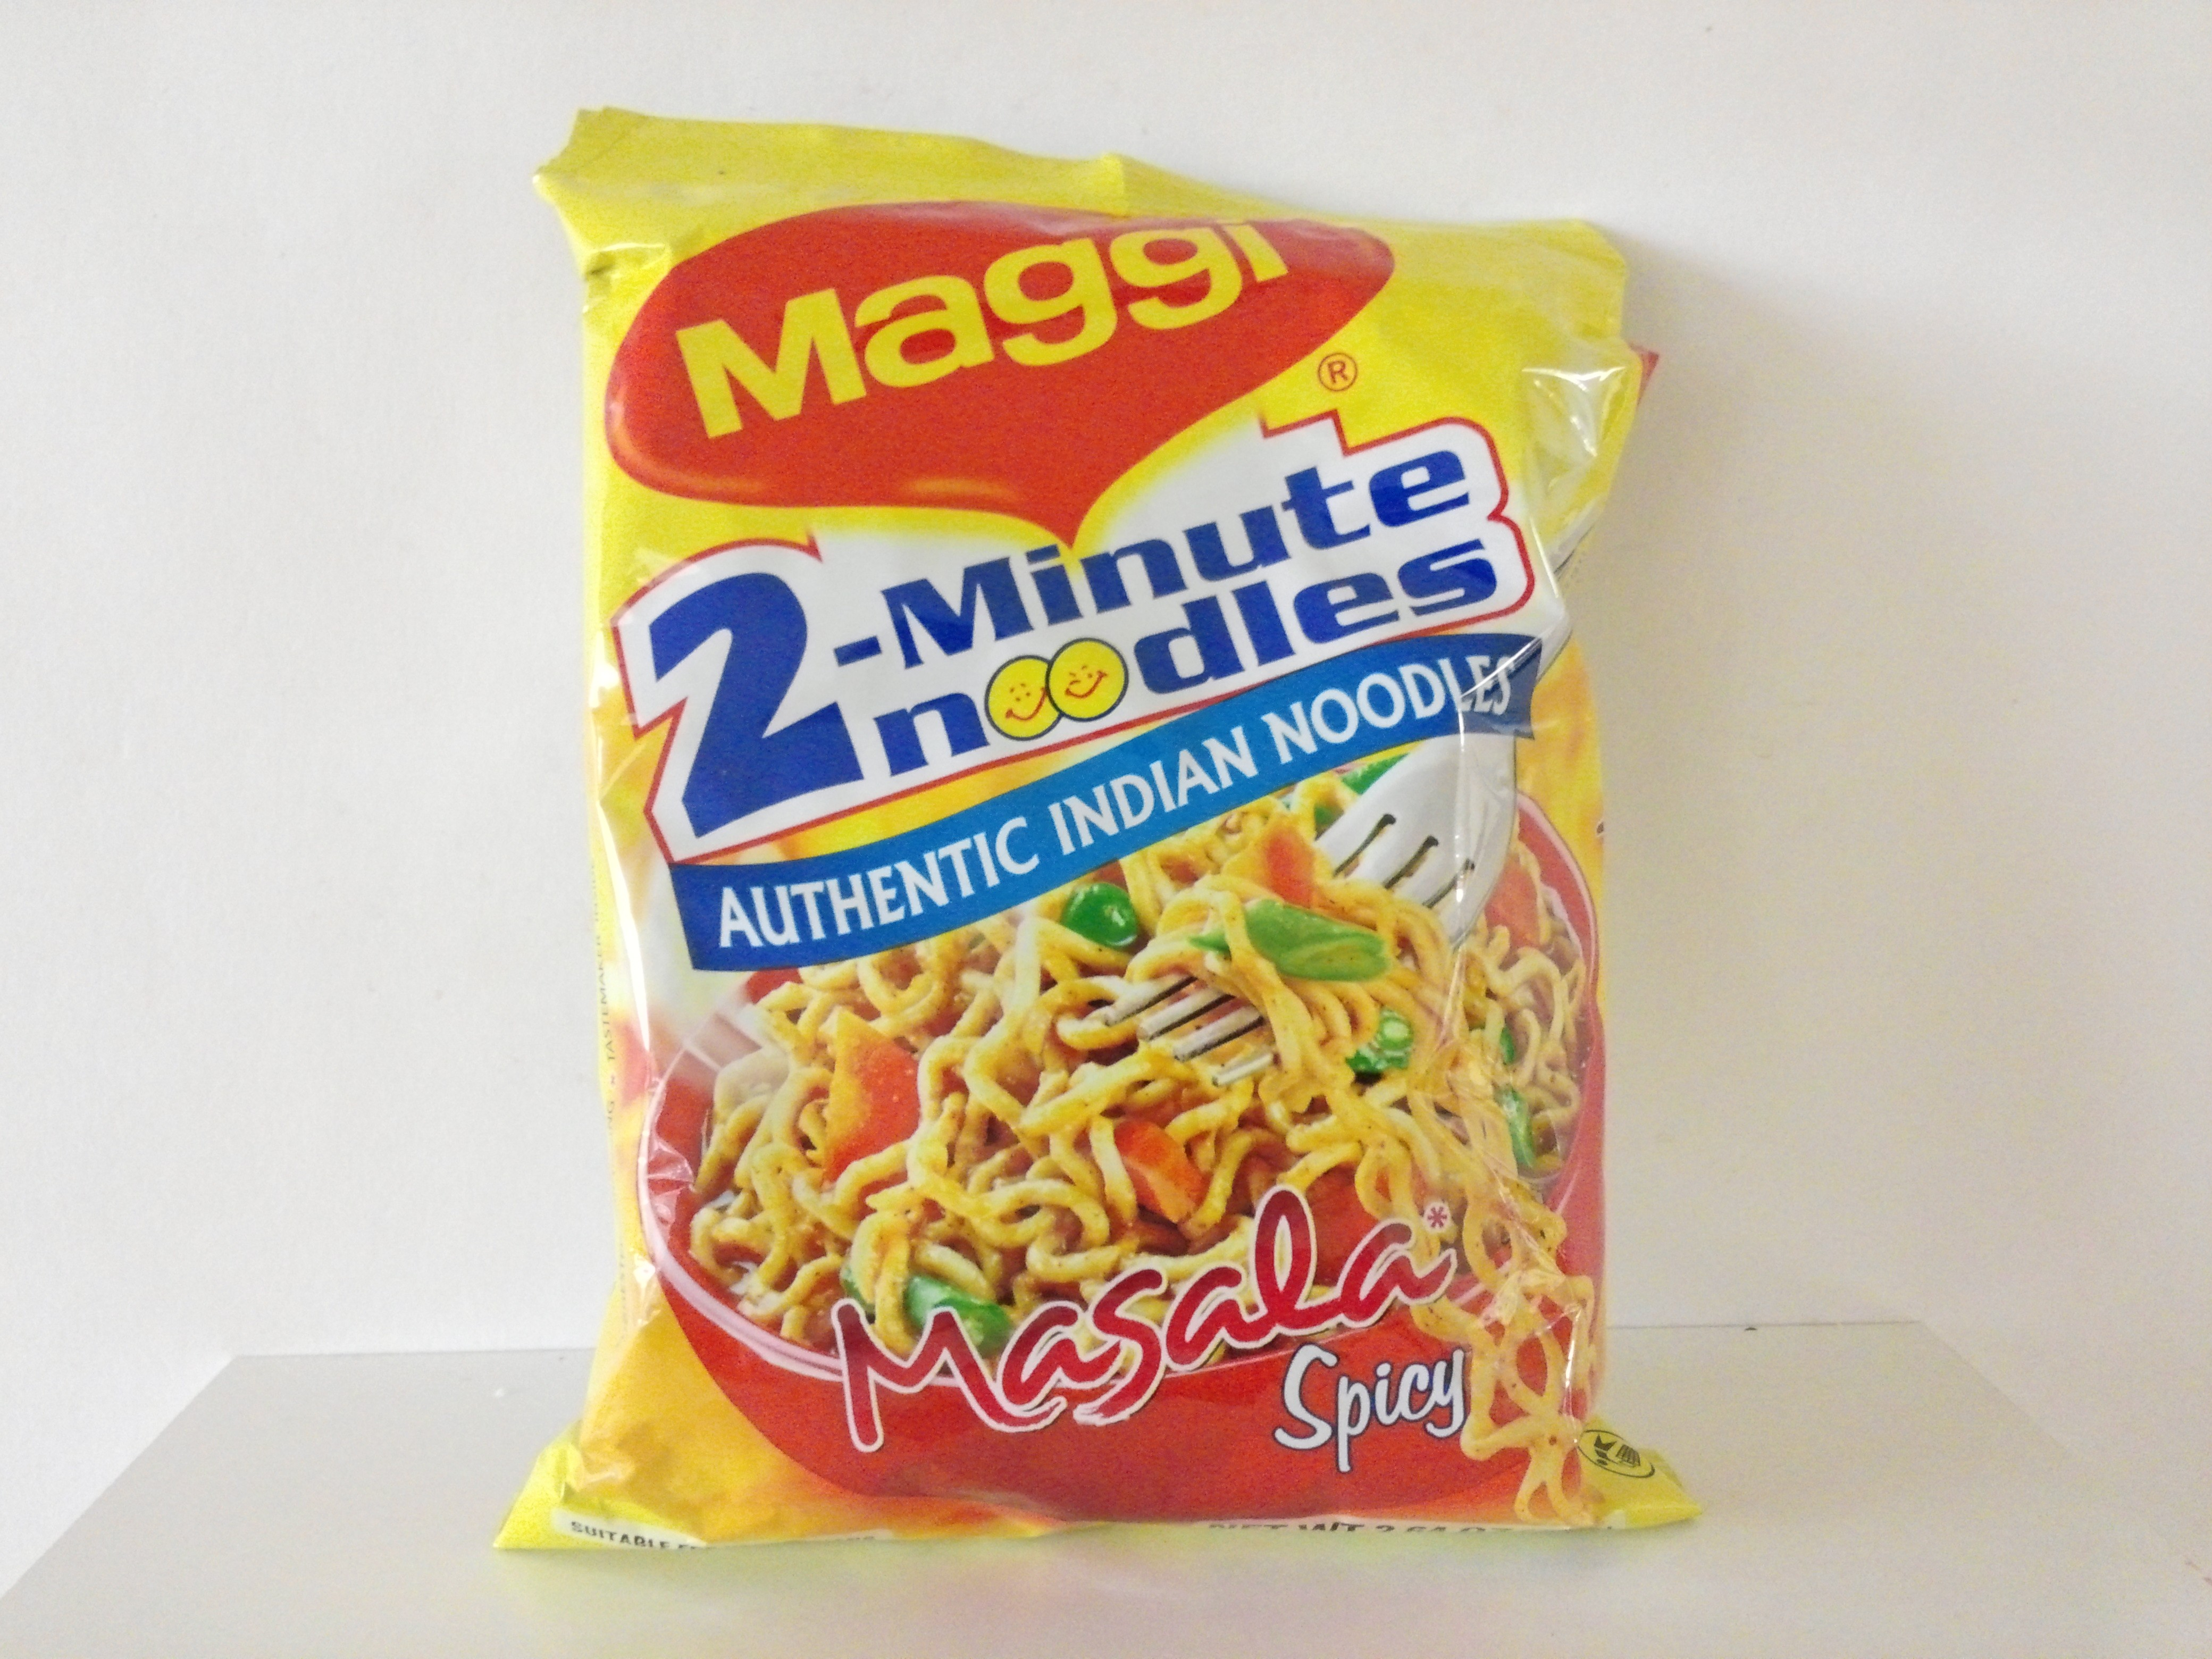 price of maggi noodles Nestlé maggi 2-minute noodles curry 8 pack 496 gm ৳ 130 add to shopping bag details  details  add to bag doodles chicken masala stick noodles 300 gm ৳ 35 ৳ 38 add to shopping bag details  details  add to bag doodles instant noodles chicken curry 8 pcs 496 gm ৳ 130 add to shopping bag details.